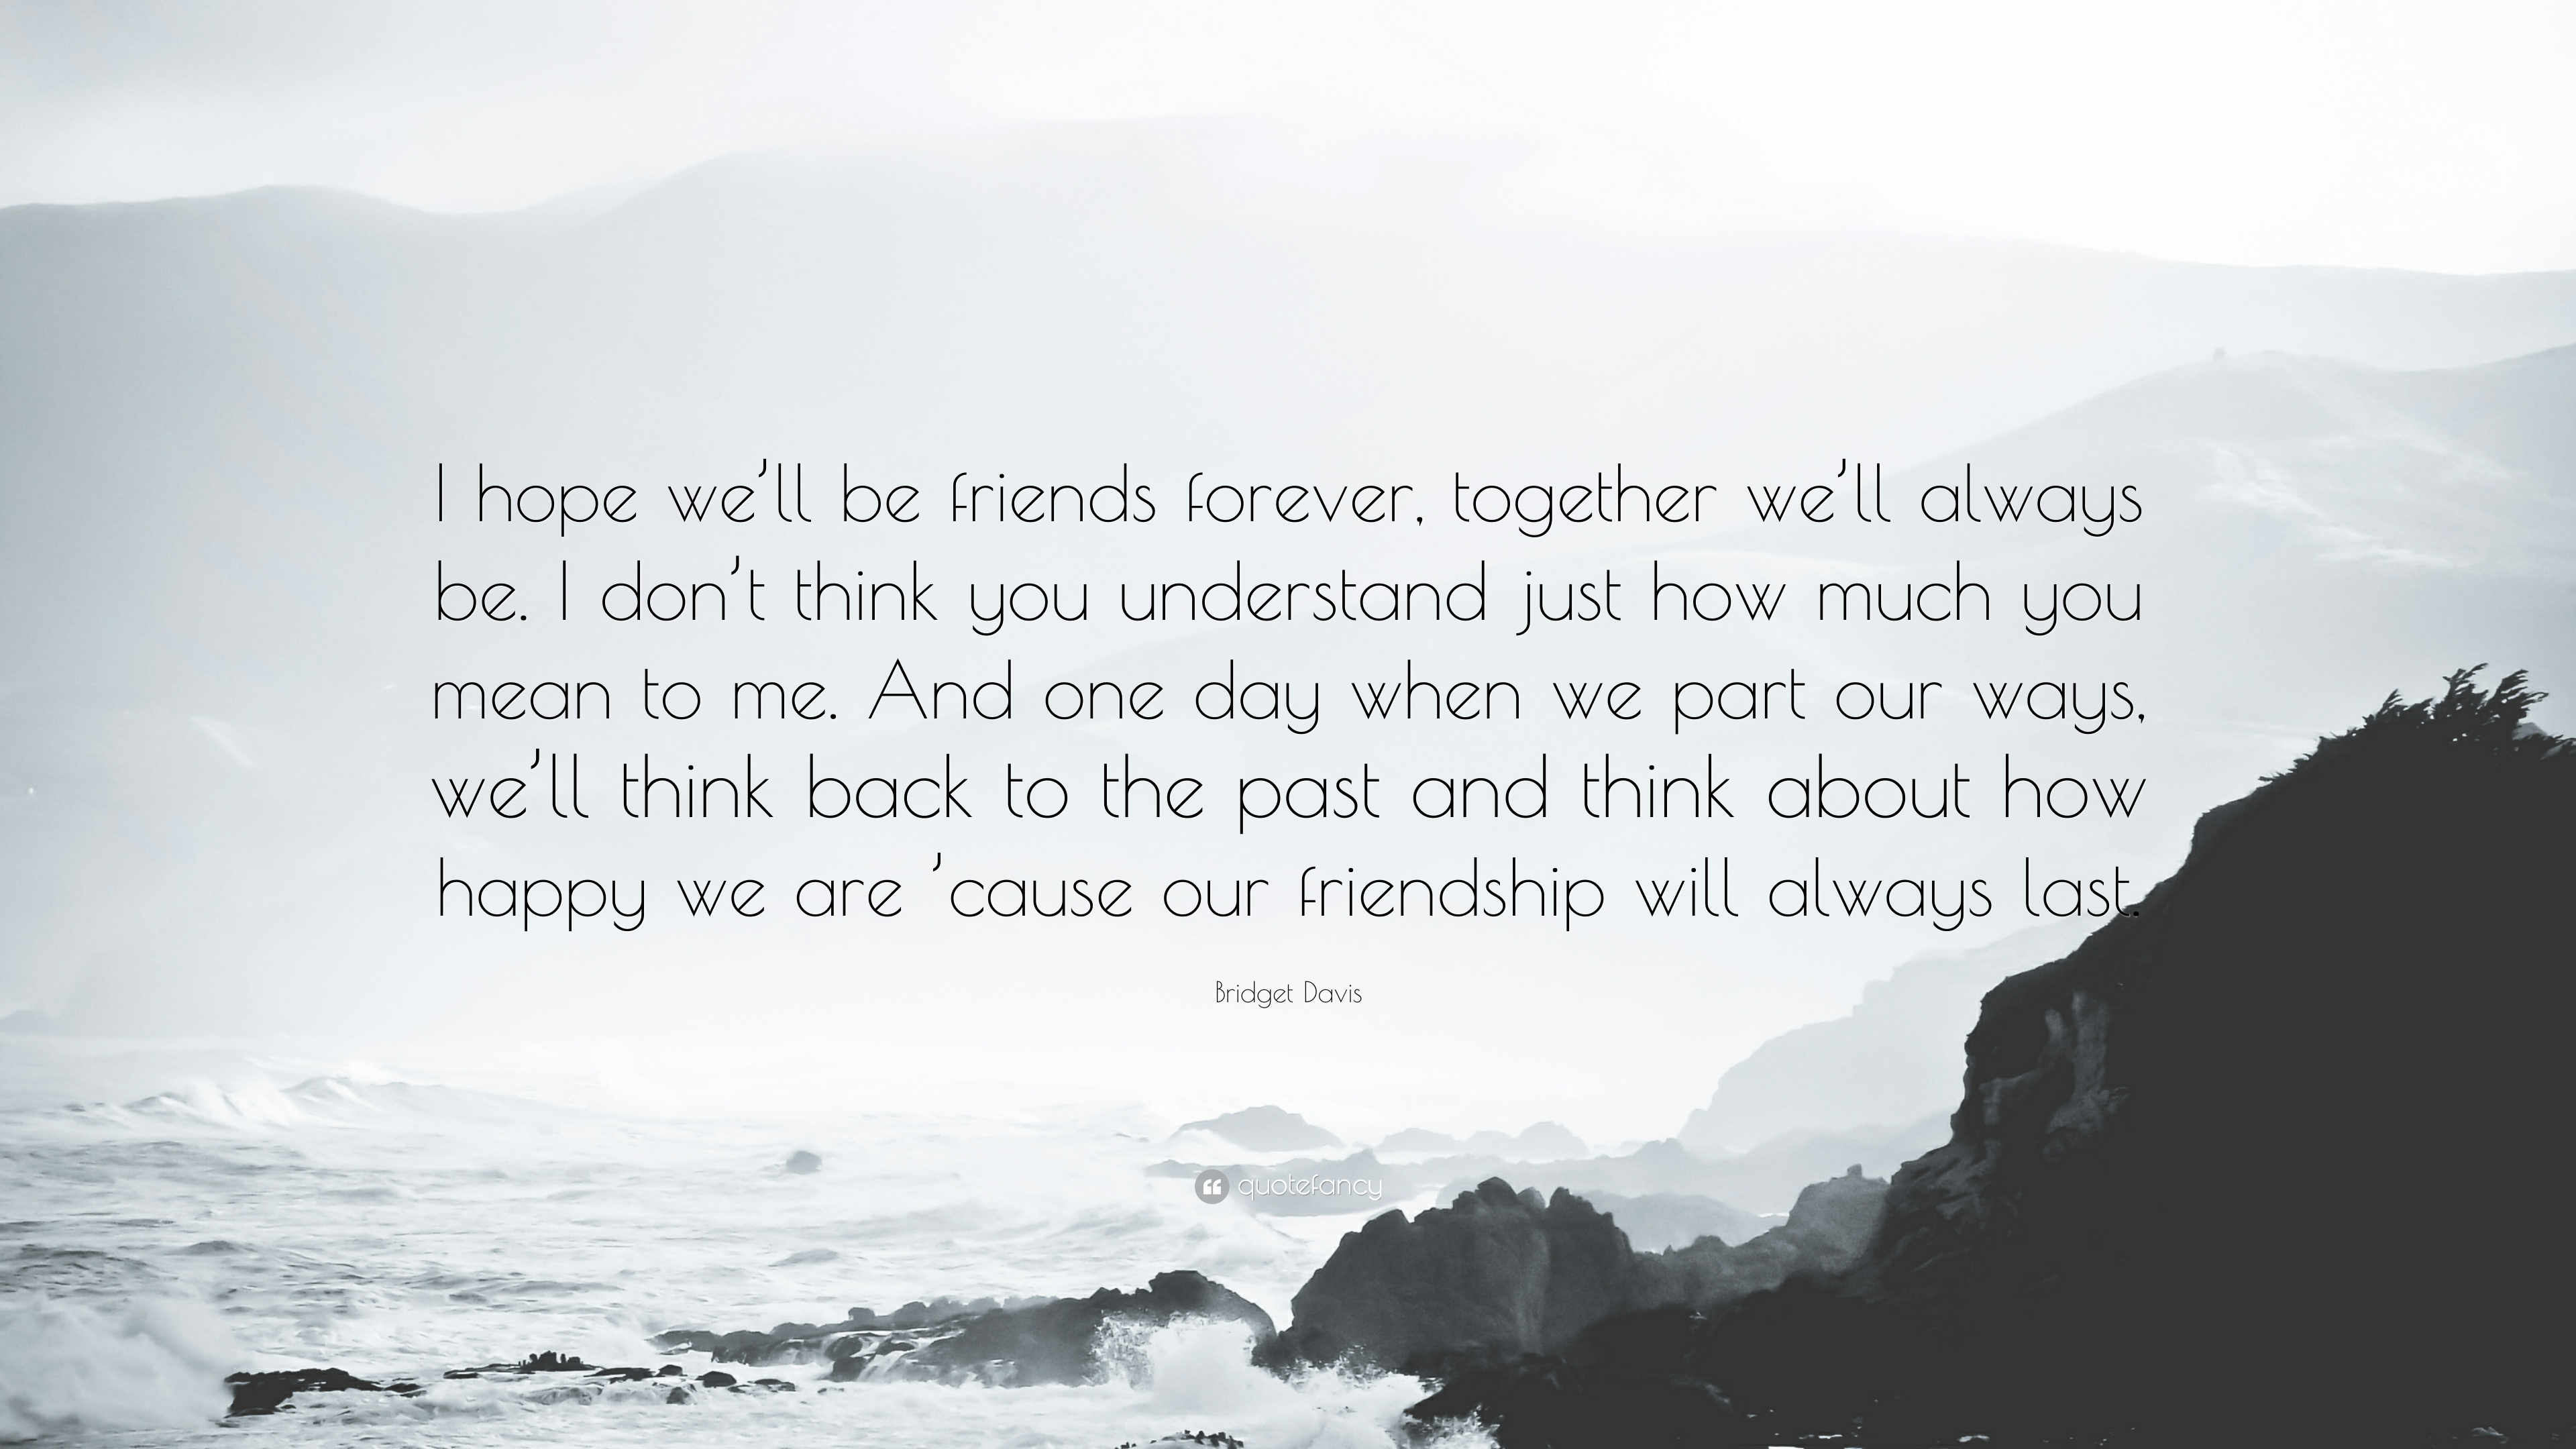 We will be together 32